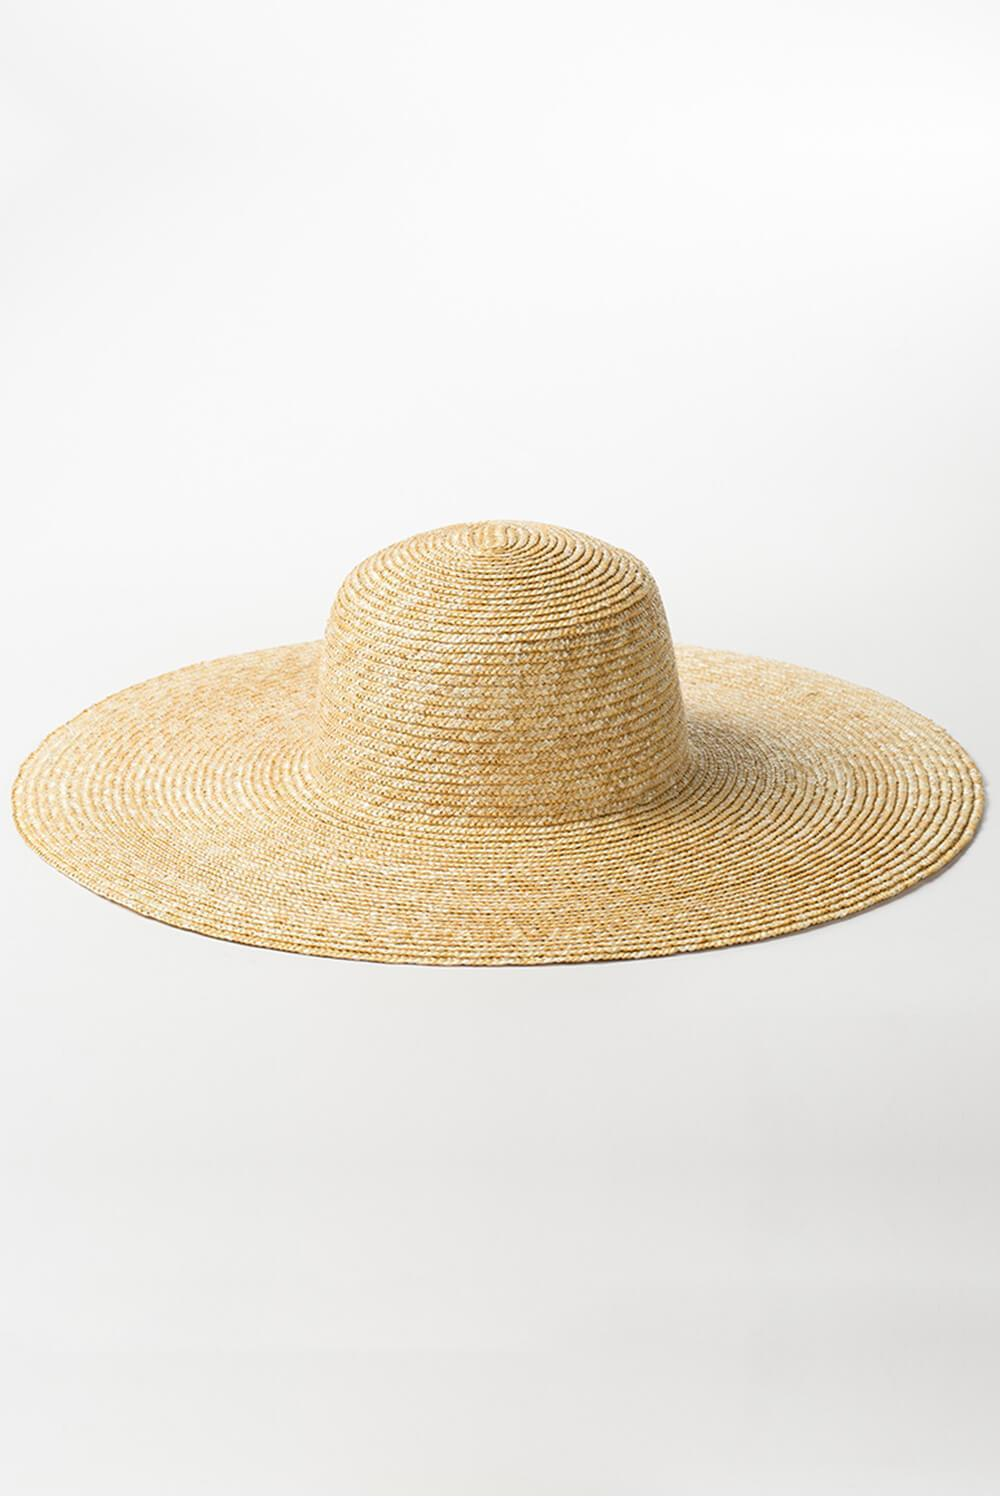 Wheat Straw Dome Crown Sun Hat